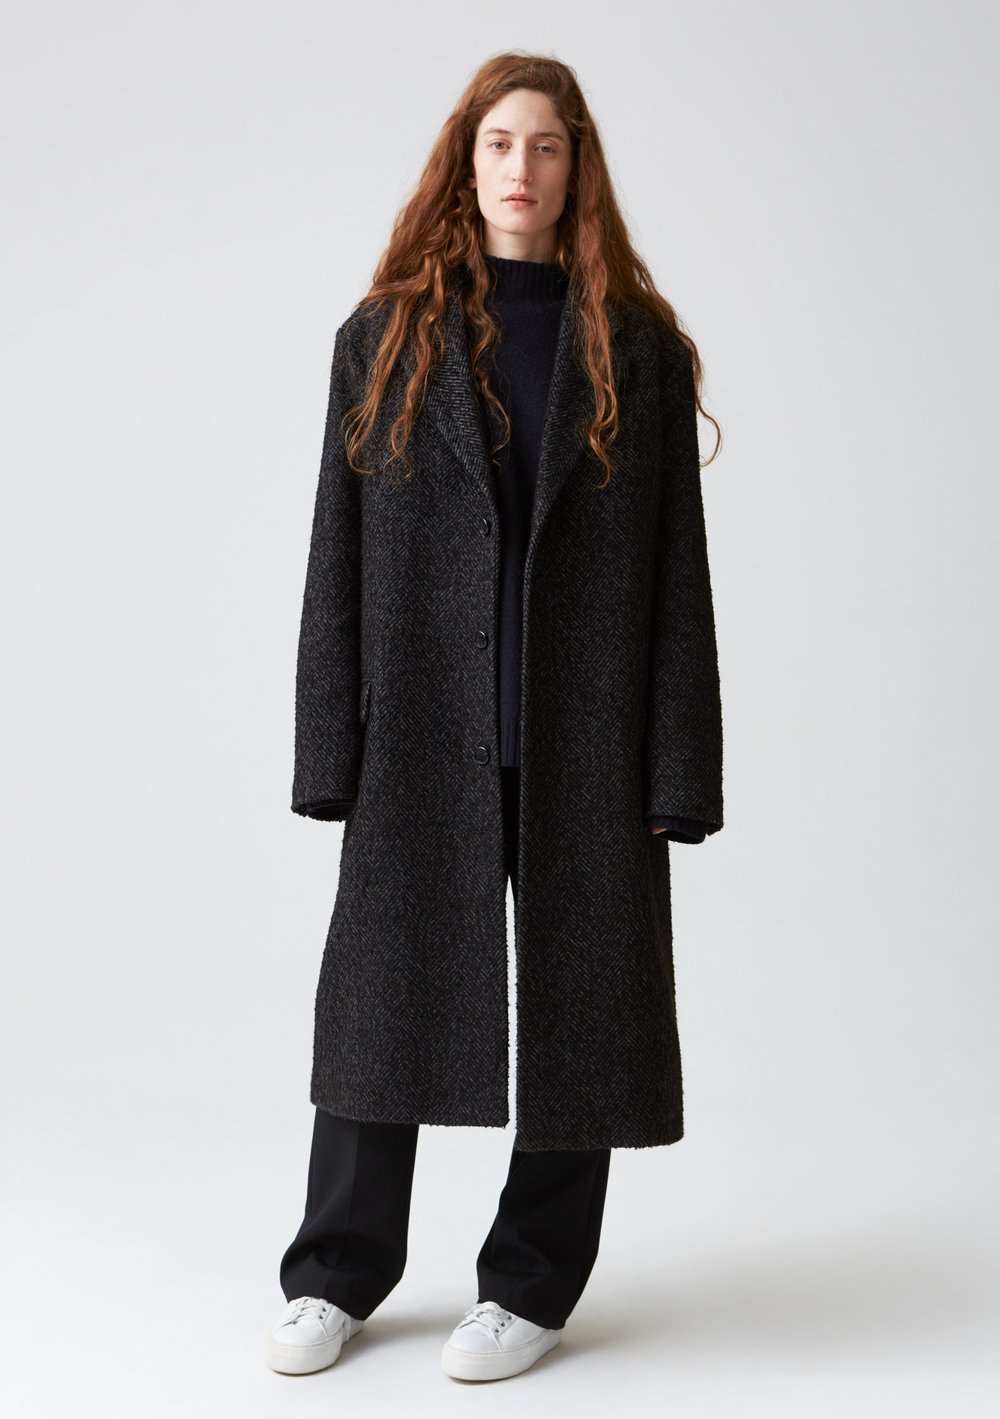 hope-area-coat-black-mel-front-2-w.jpg